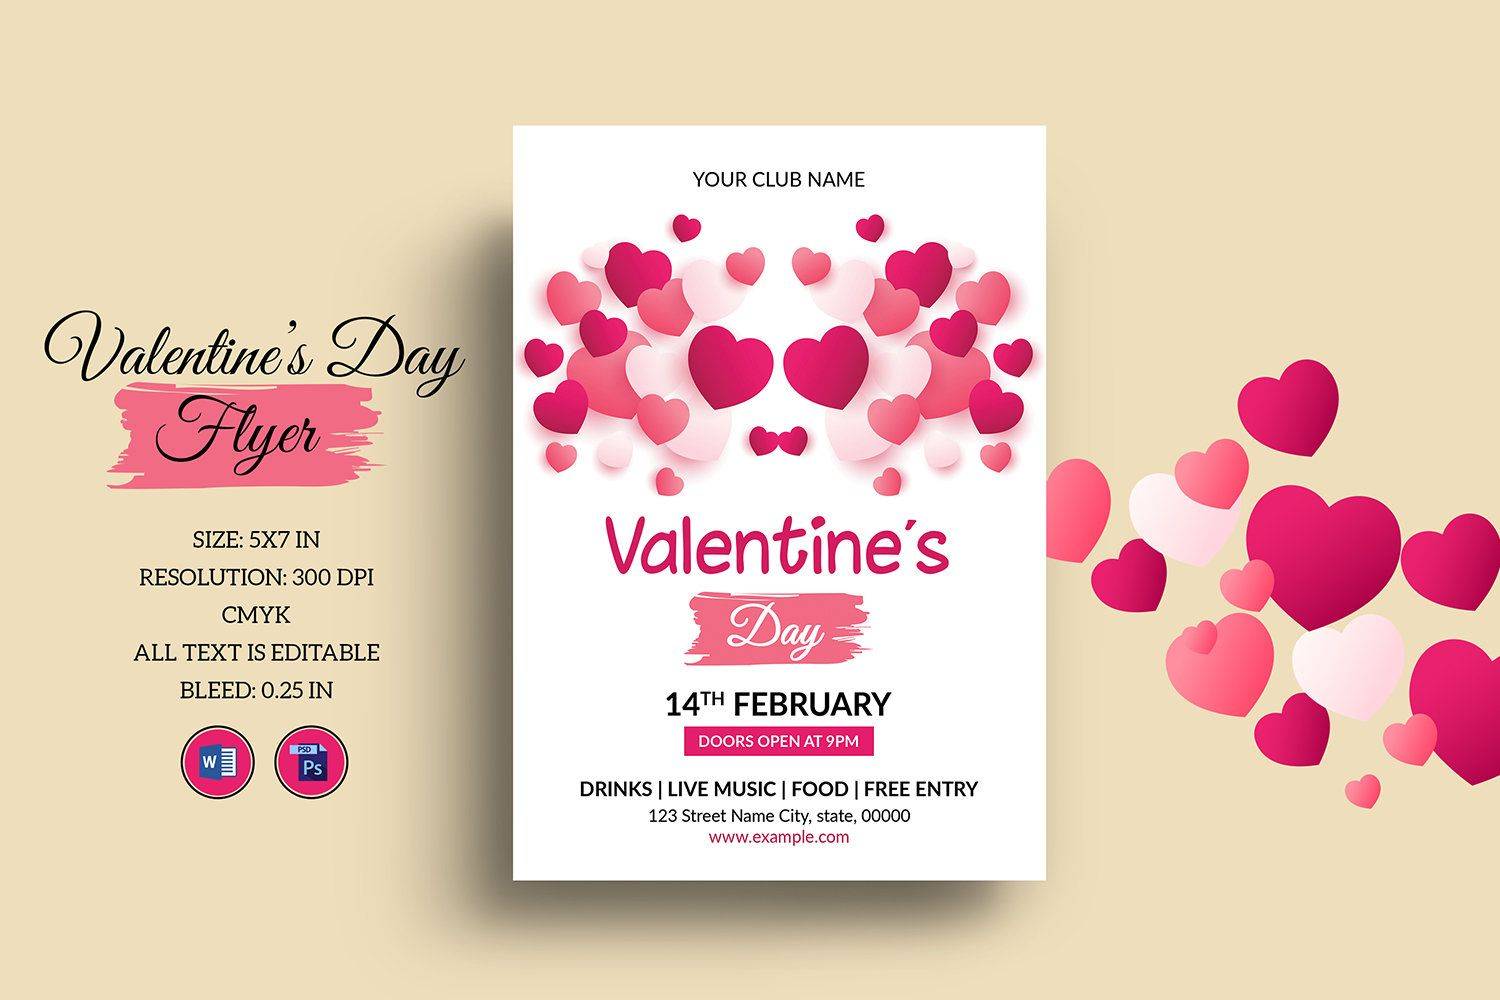 Printable Valentines Day Party Flyer Template Valentines Day Party Invitation Template Ms Word Ph In 2020 Valentines Day Party Party Flyer Party Invite Template